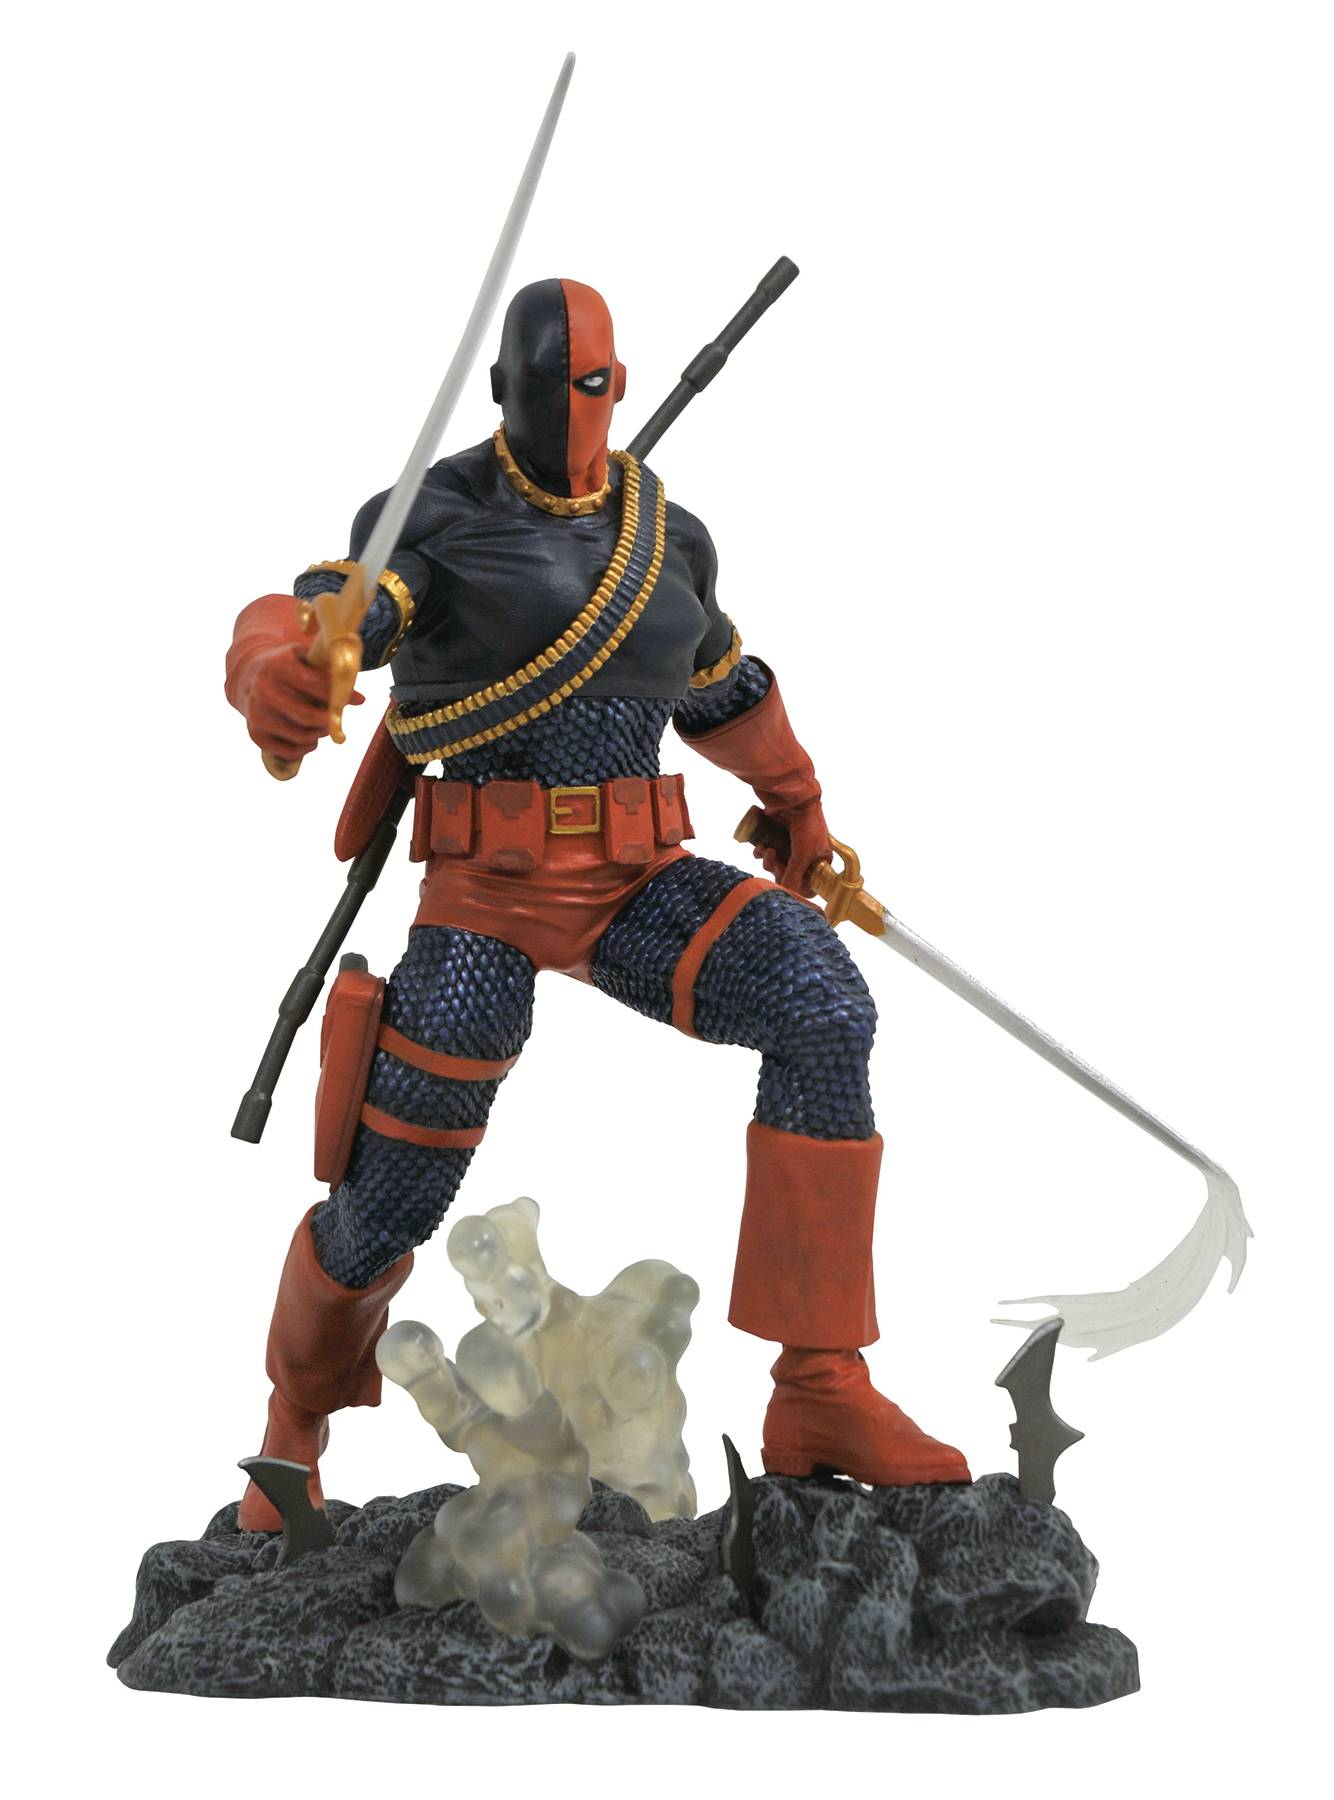 Diamond DC Comics Gallery Deathstroke Statue